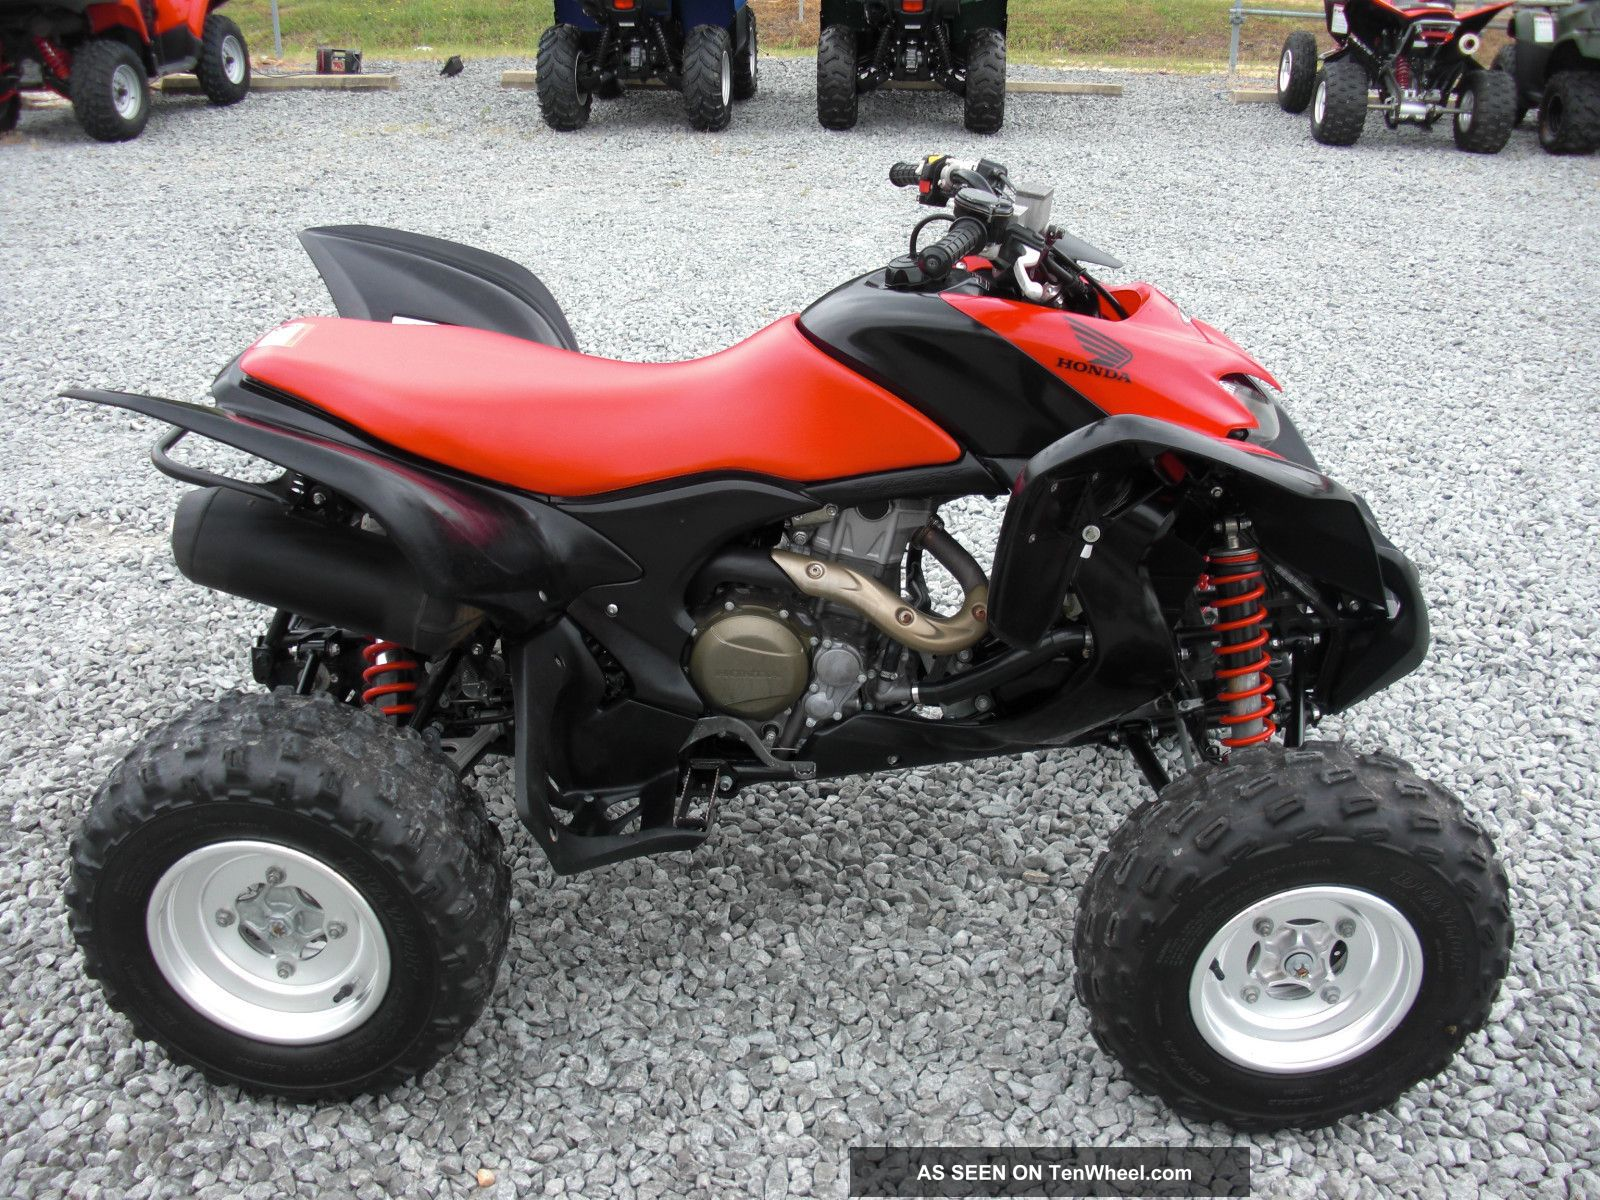 2008 Honda Trx700xx Honda photo